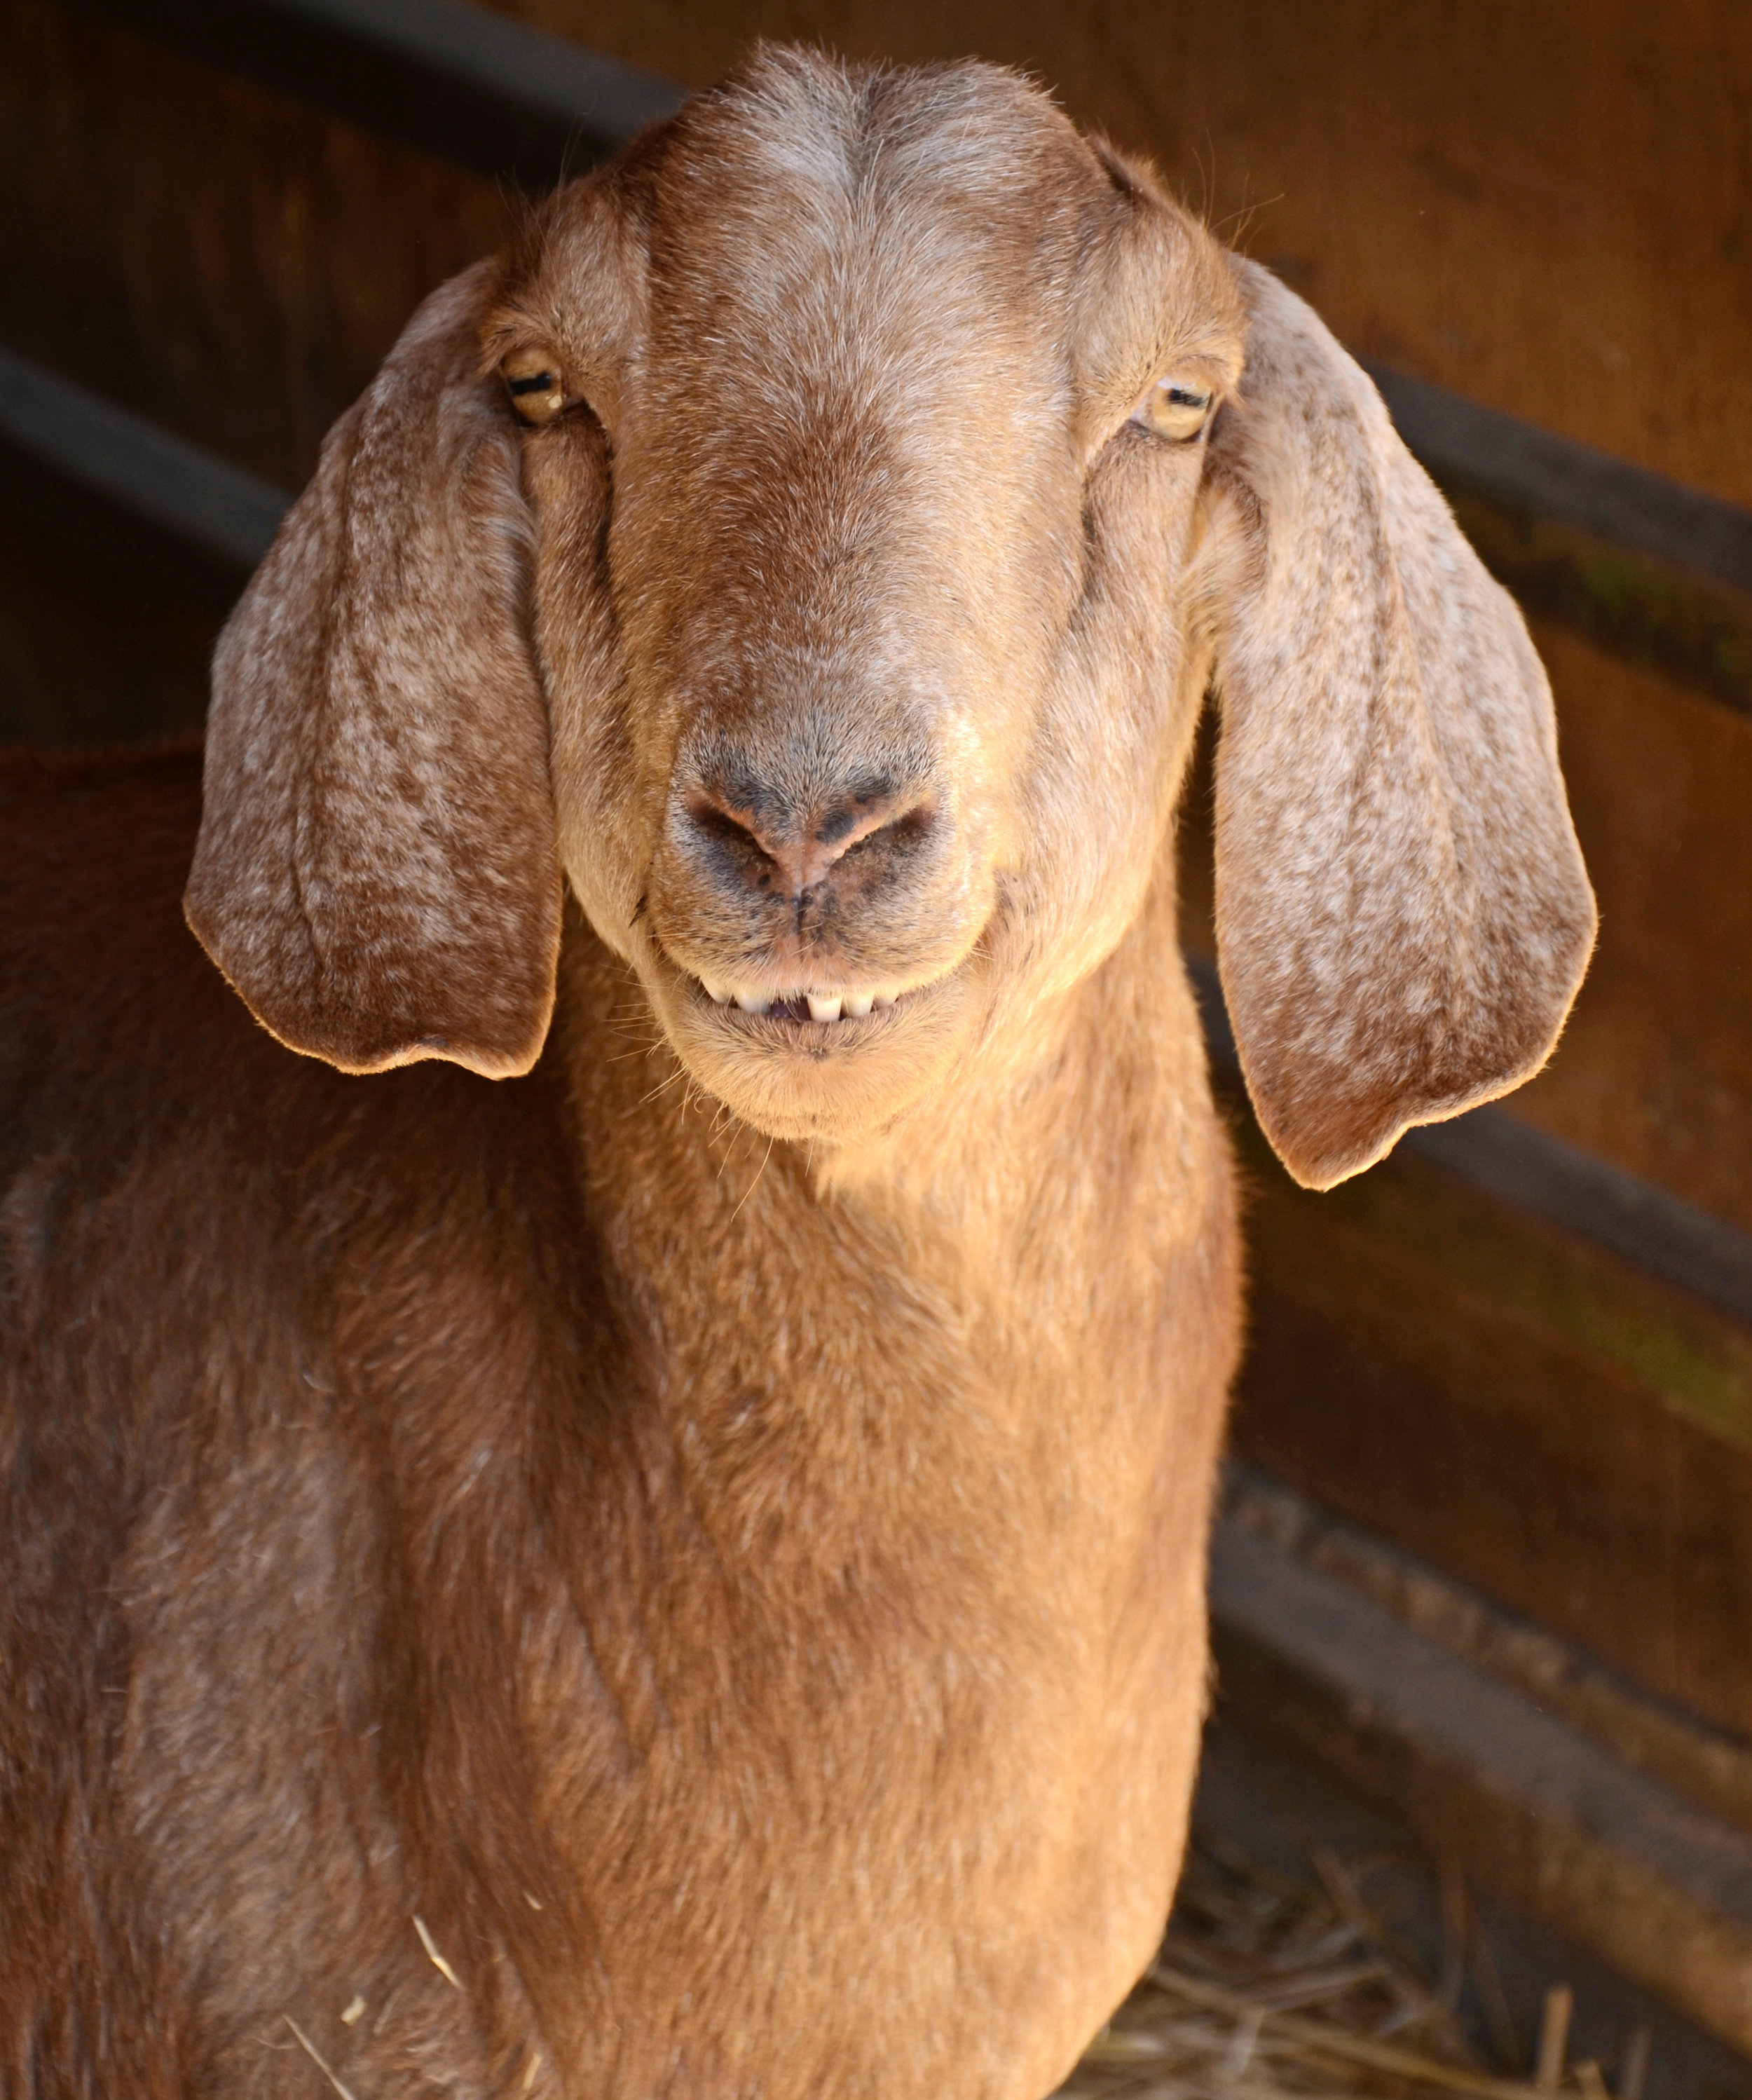 Maria SCA Goat_CREDIT_Farm_Sanctuary.JPG